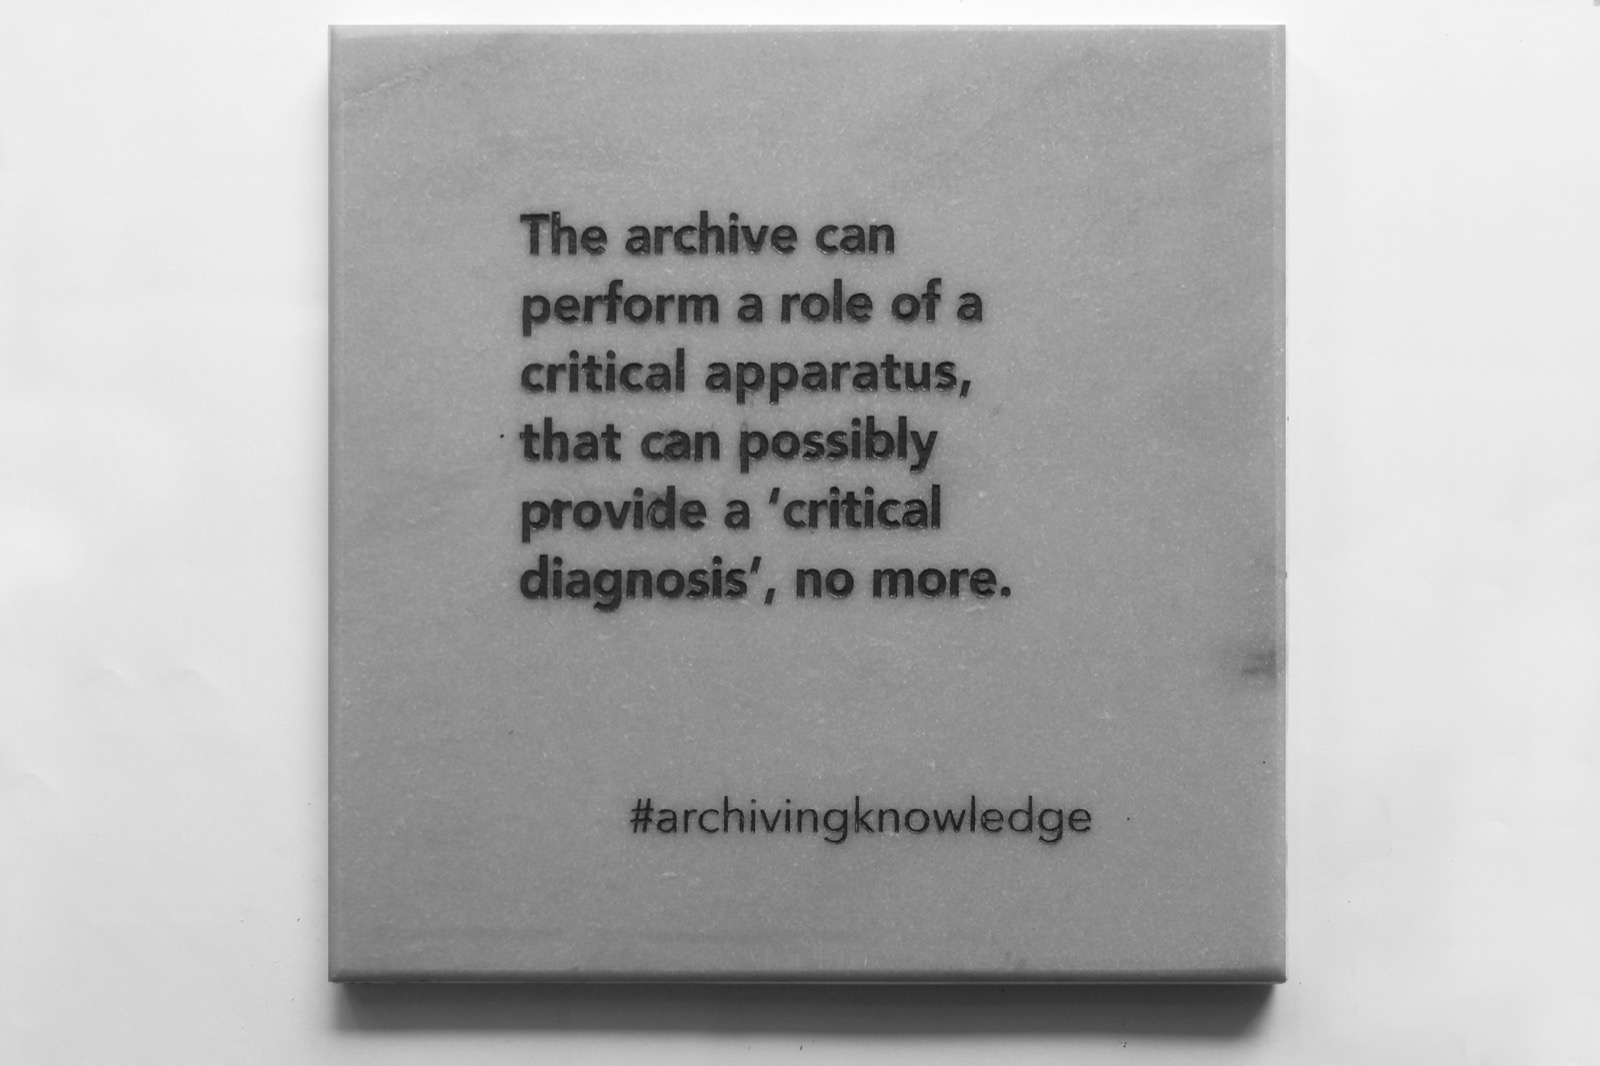 The archive can perform a role of a critical apparatus, that can possibly provide a 'critical diagnosis' no more, From the series: Archiving Knowledge, hand engraved marble, 2018